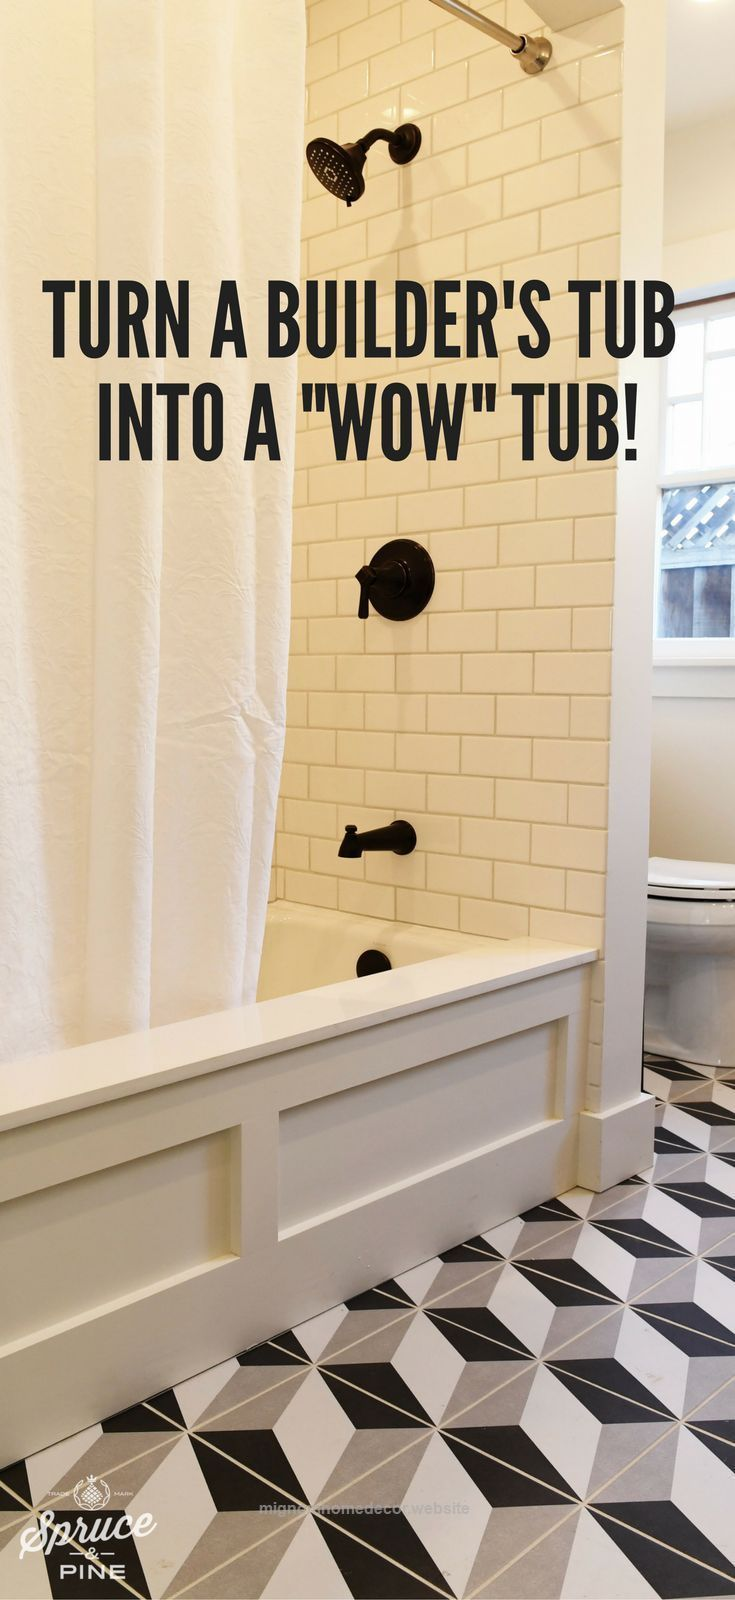 75 best Decor images on Pinterest | Future house, Home ideas and ...